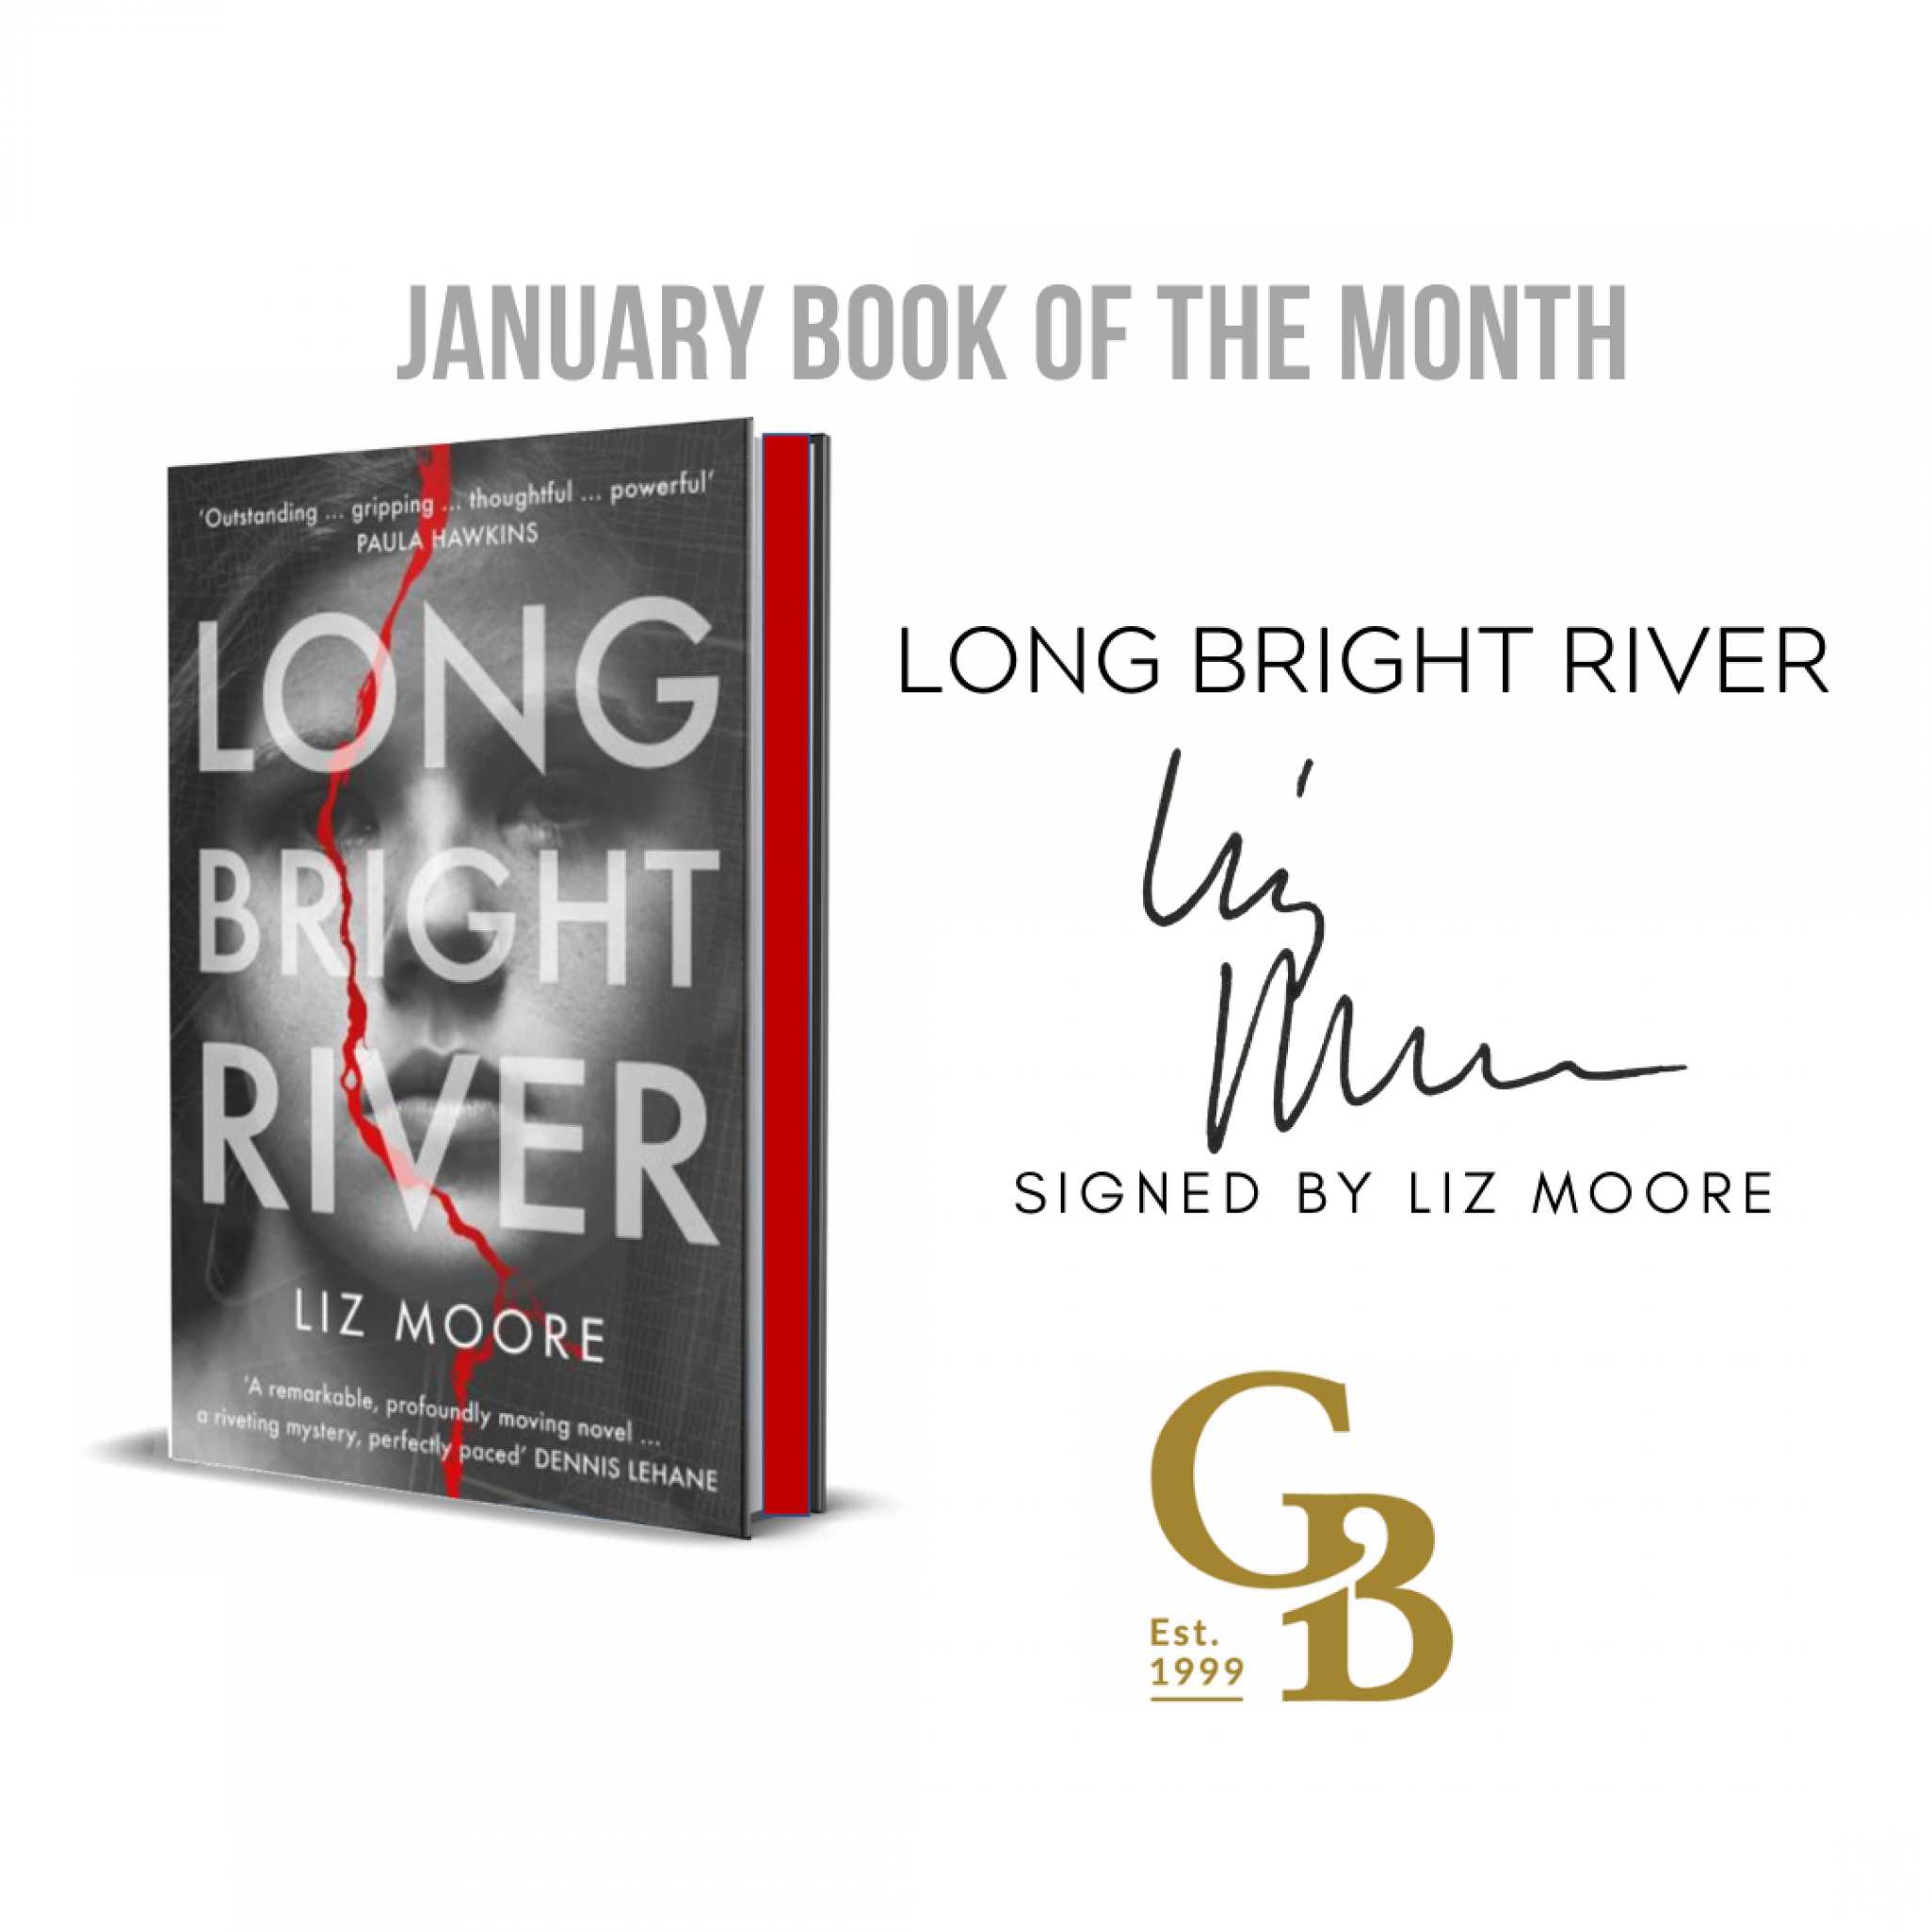 January Book of the Month